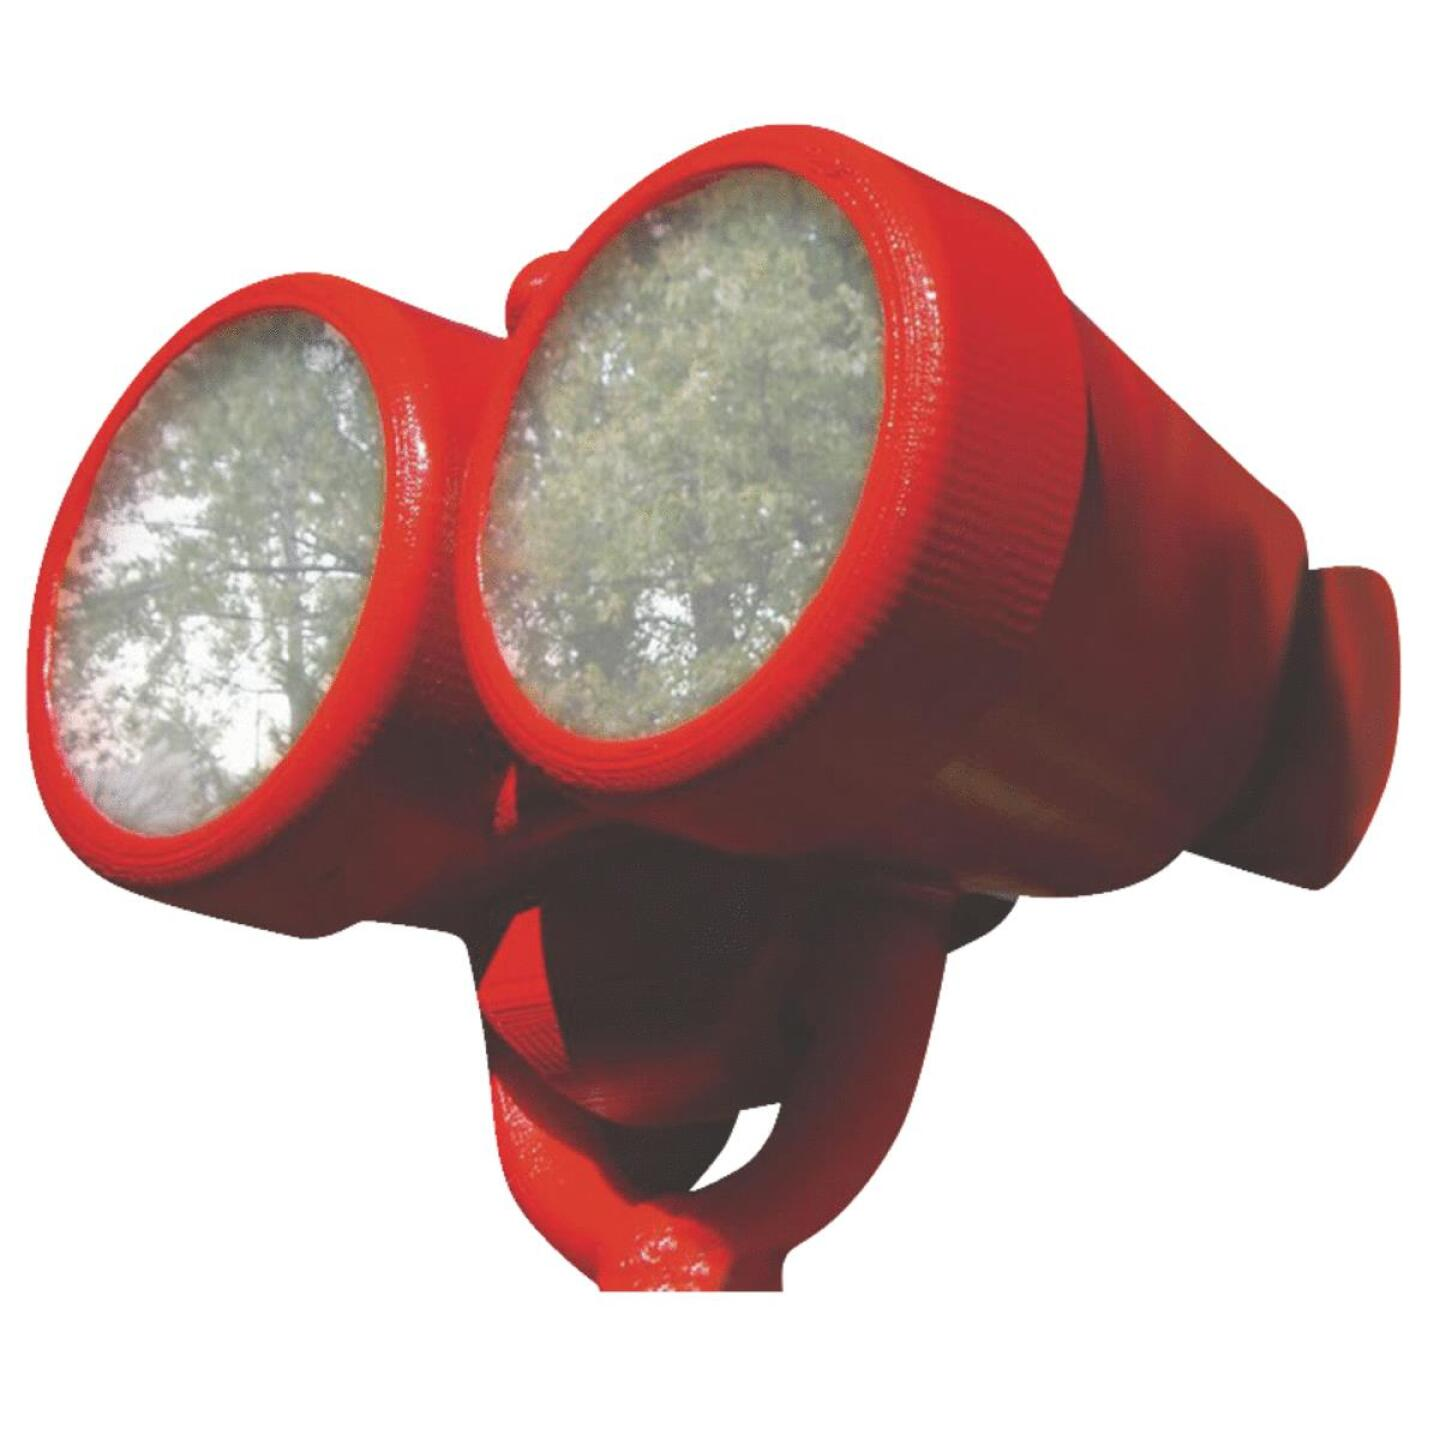 Swing N Slide Red Plastic Playground Binoculars Image 1